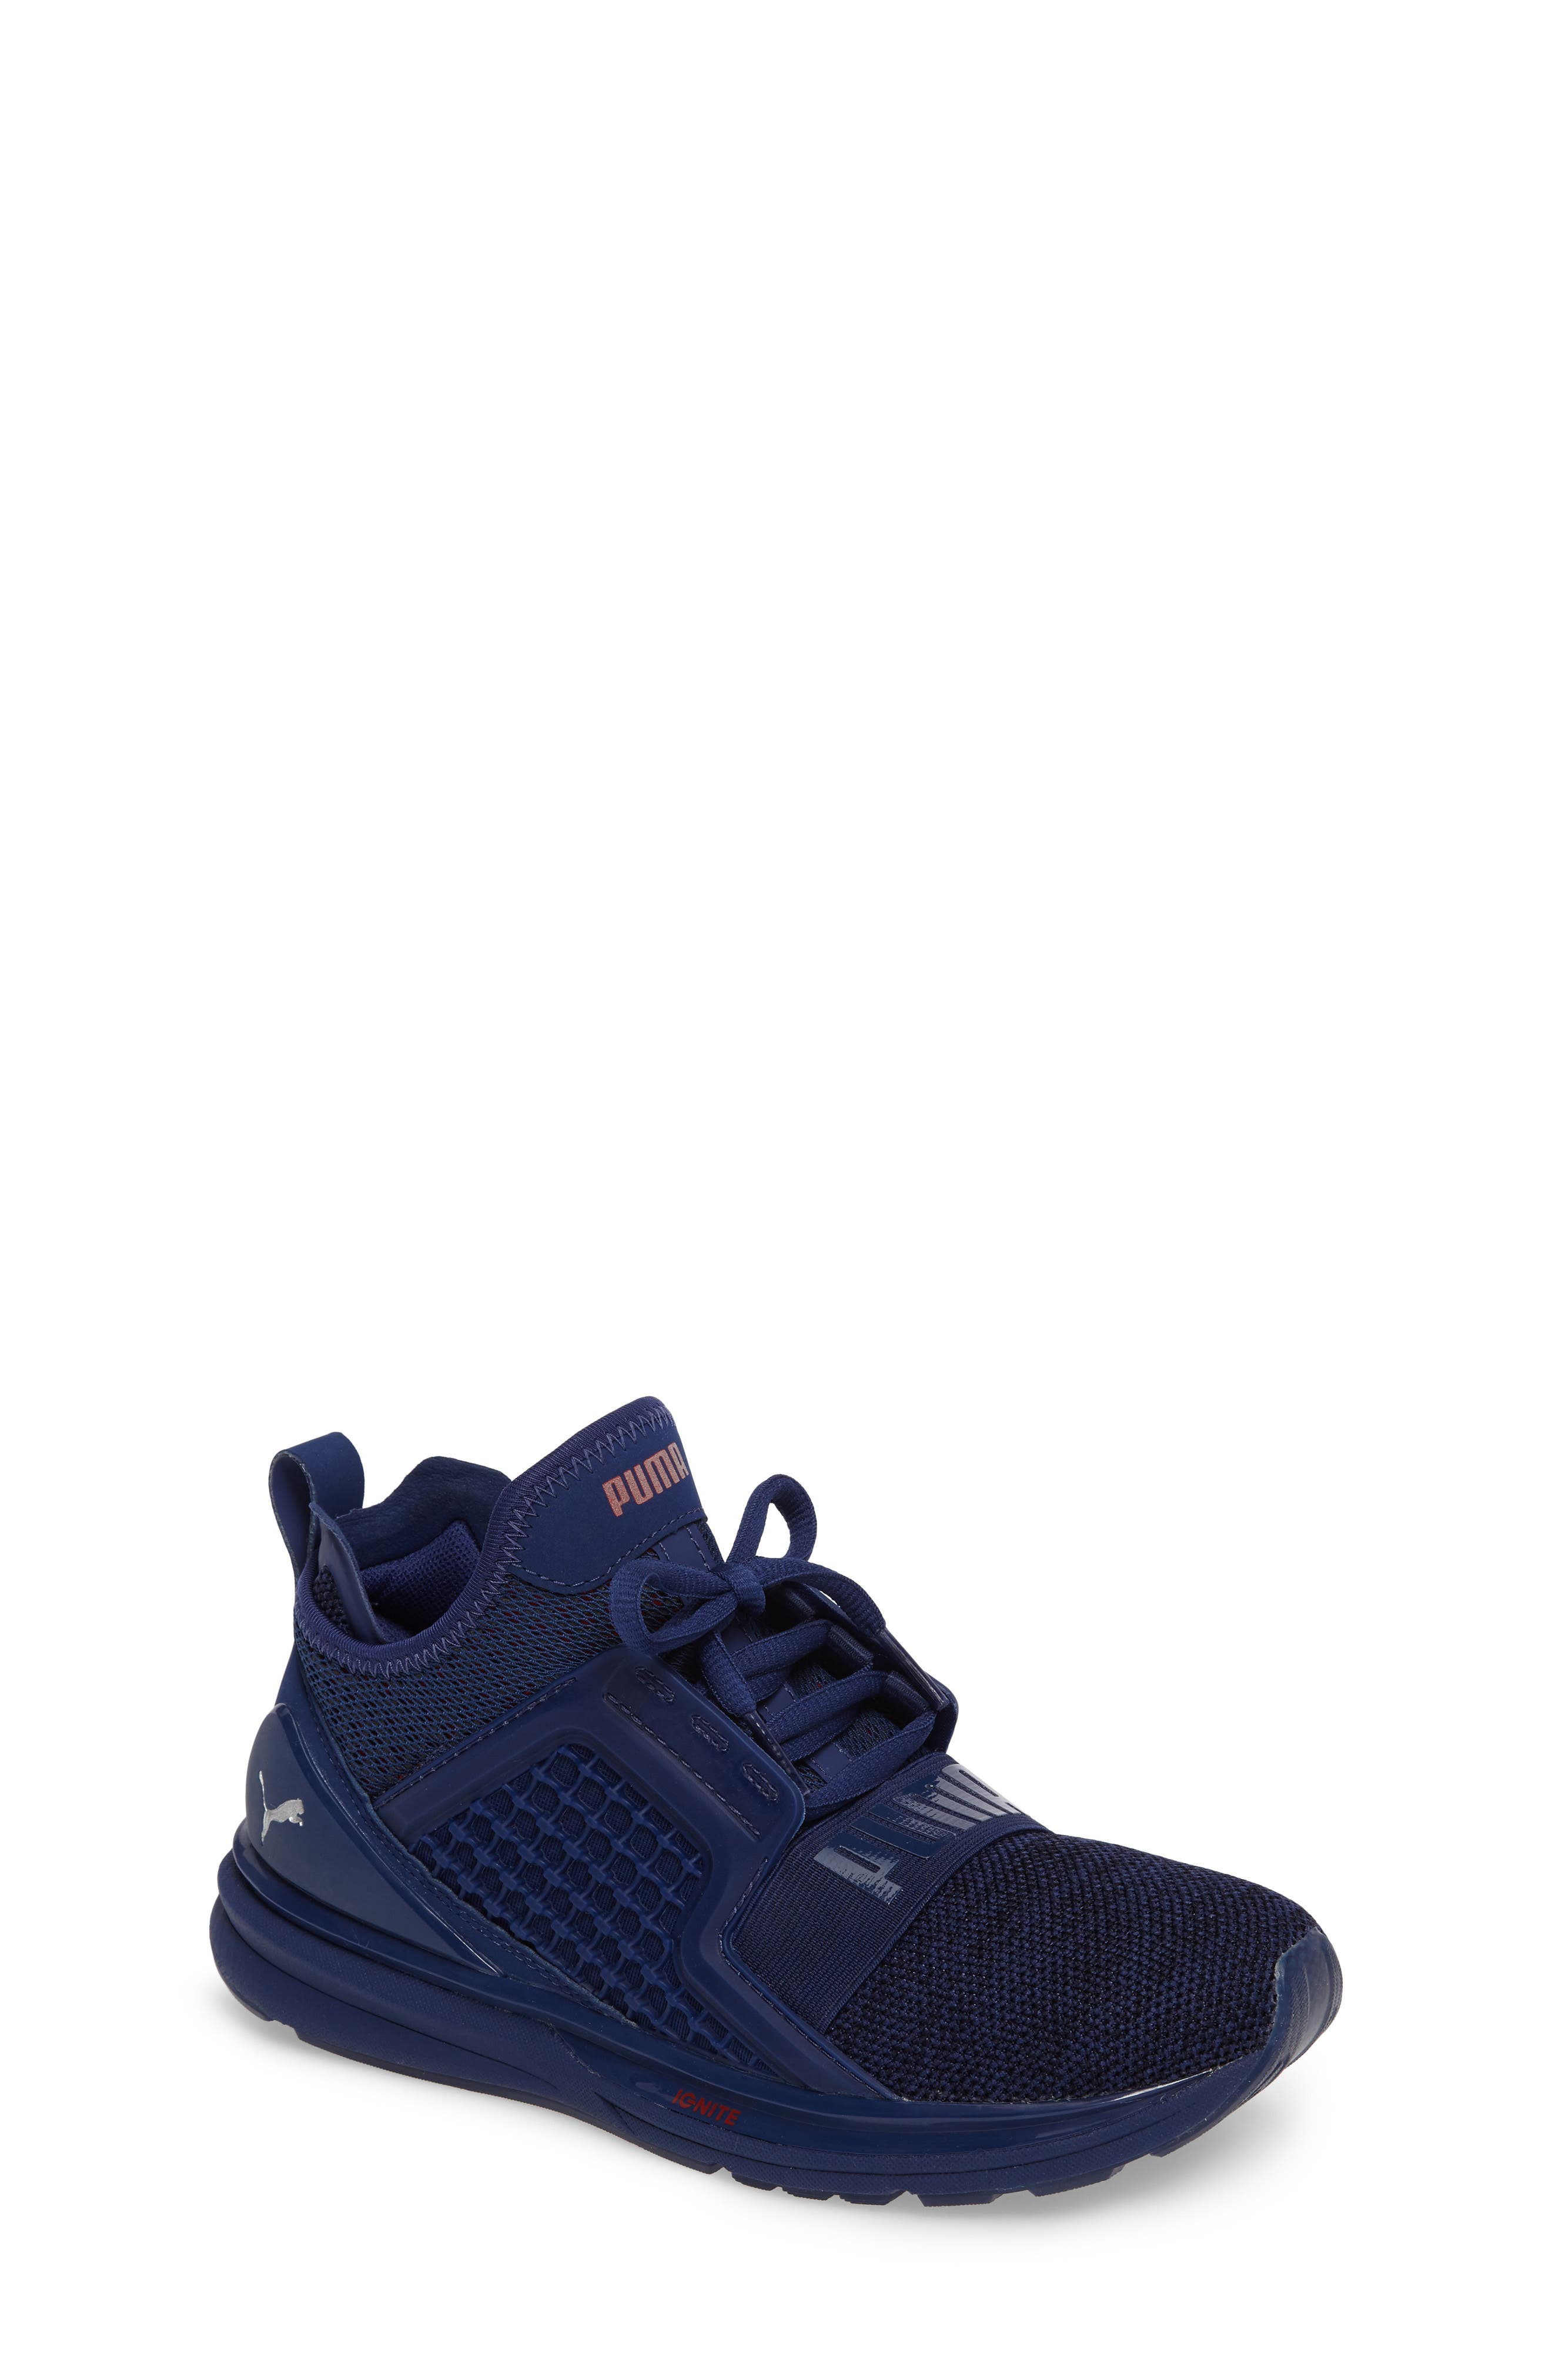 Main Image - PUMA Ignite Limitless Sneaker (Big Kid)